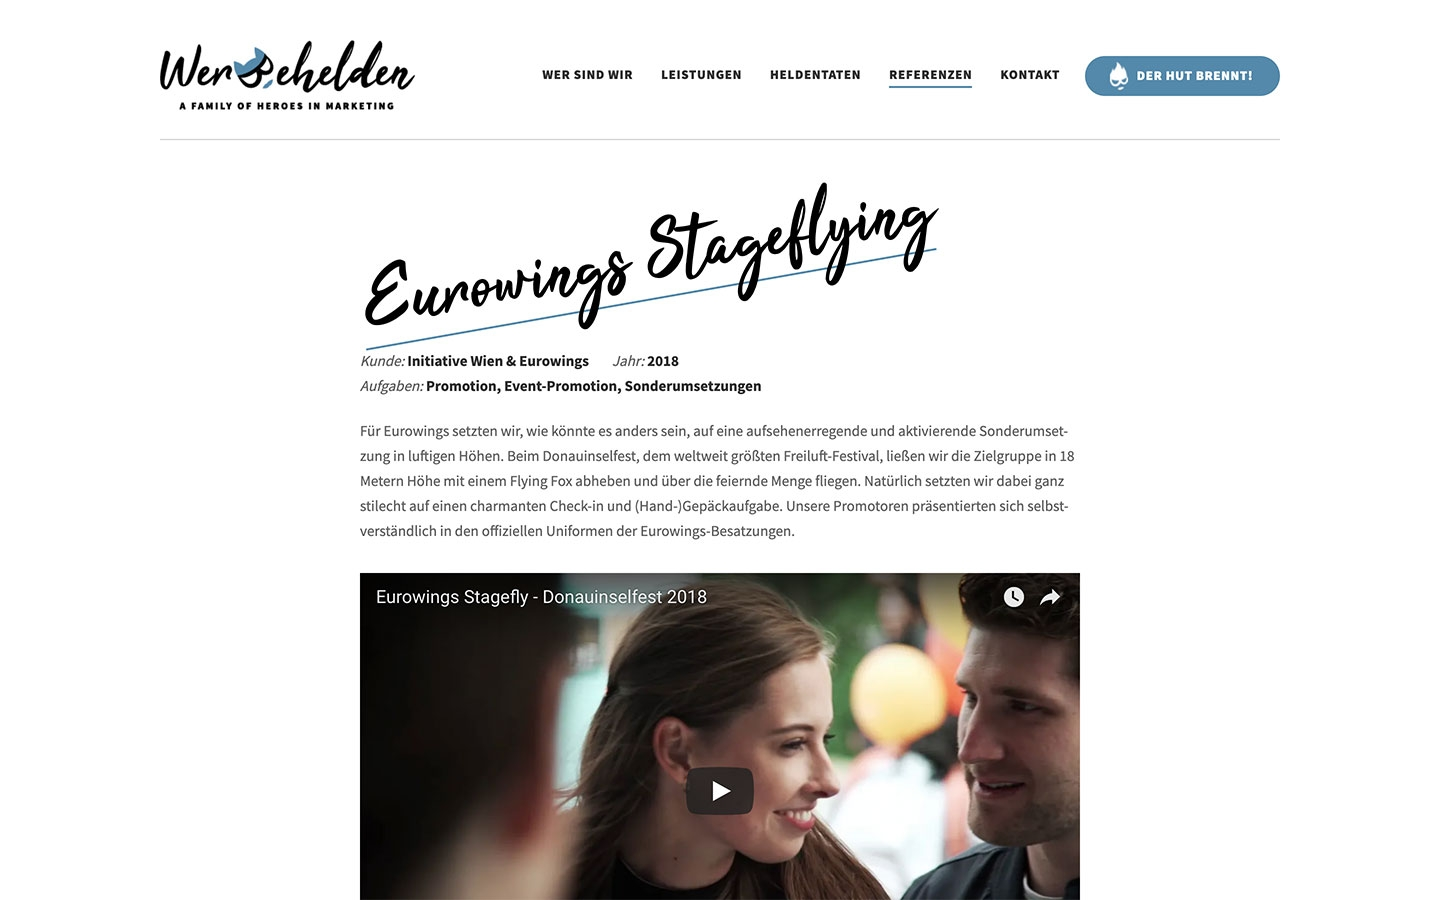 Werbehelden | werbehelden.com | 2019 (Screen Only 04) © echonet communication